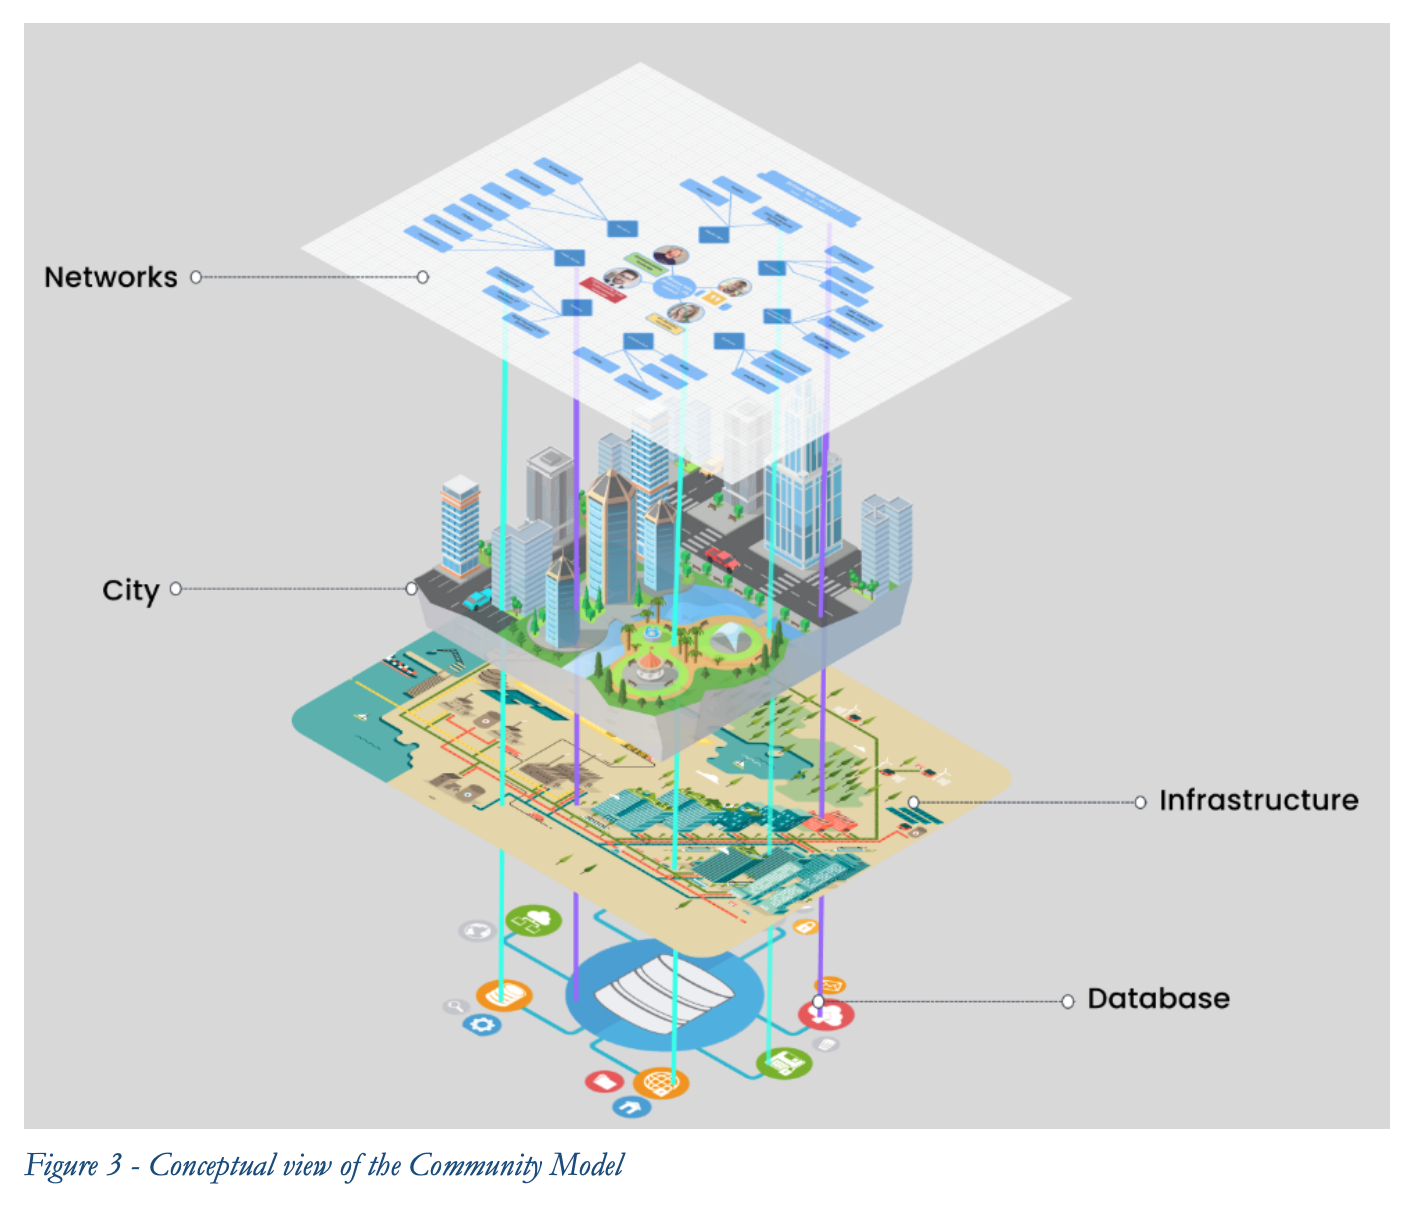 Conceptual view of the Community Model